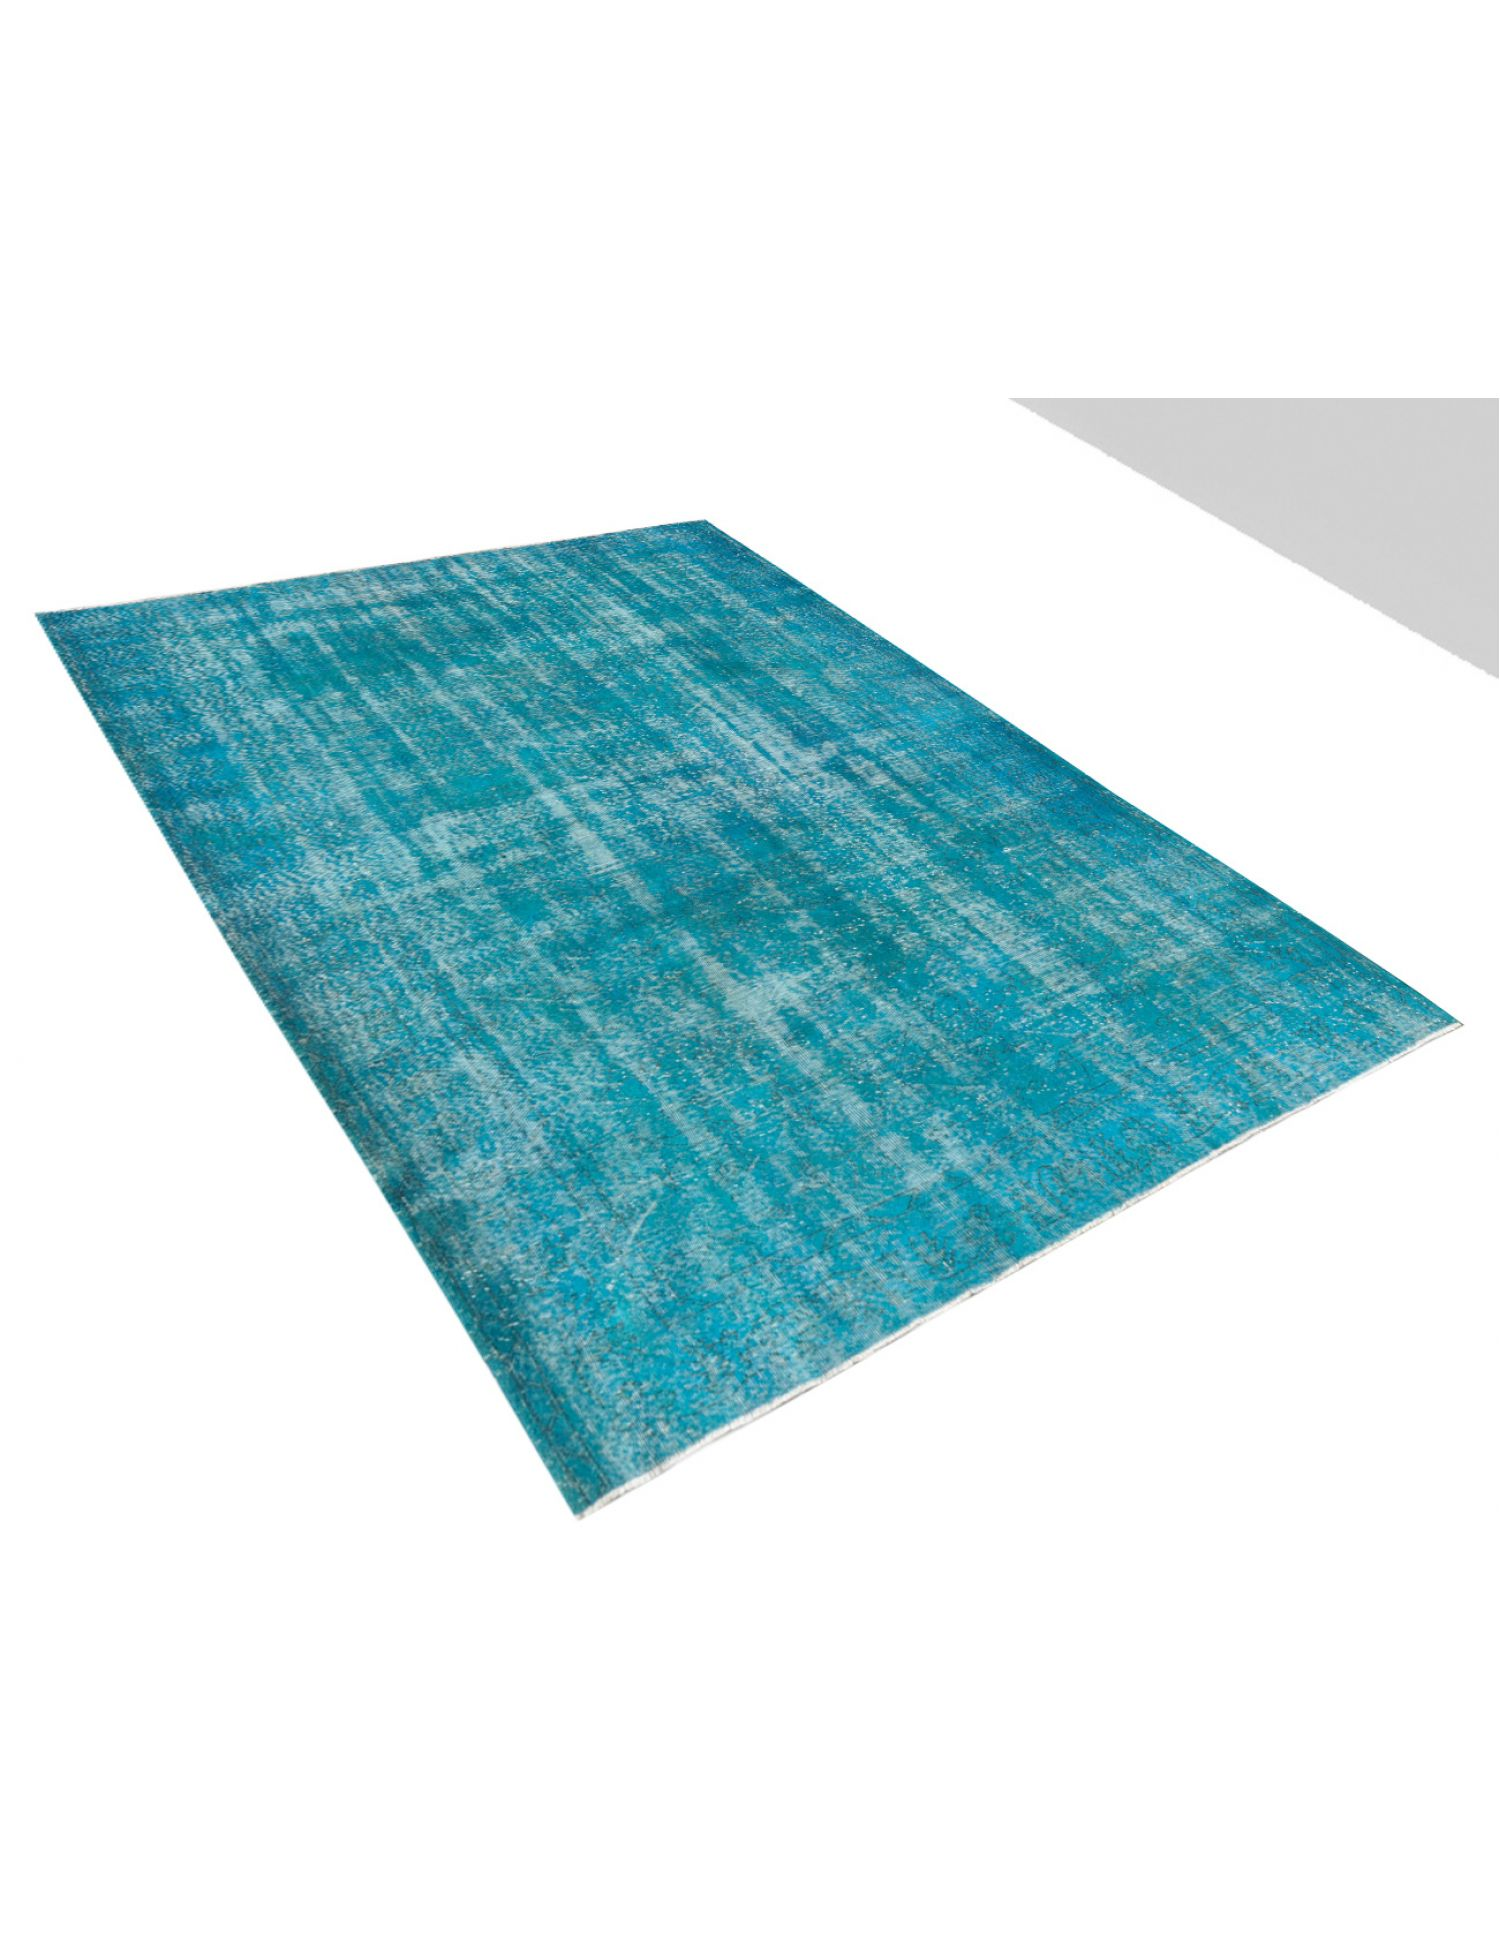 Vintage Carpet  blue <br/>325 x 225 cm